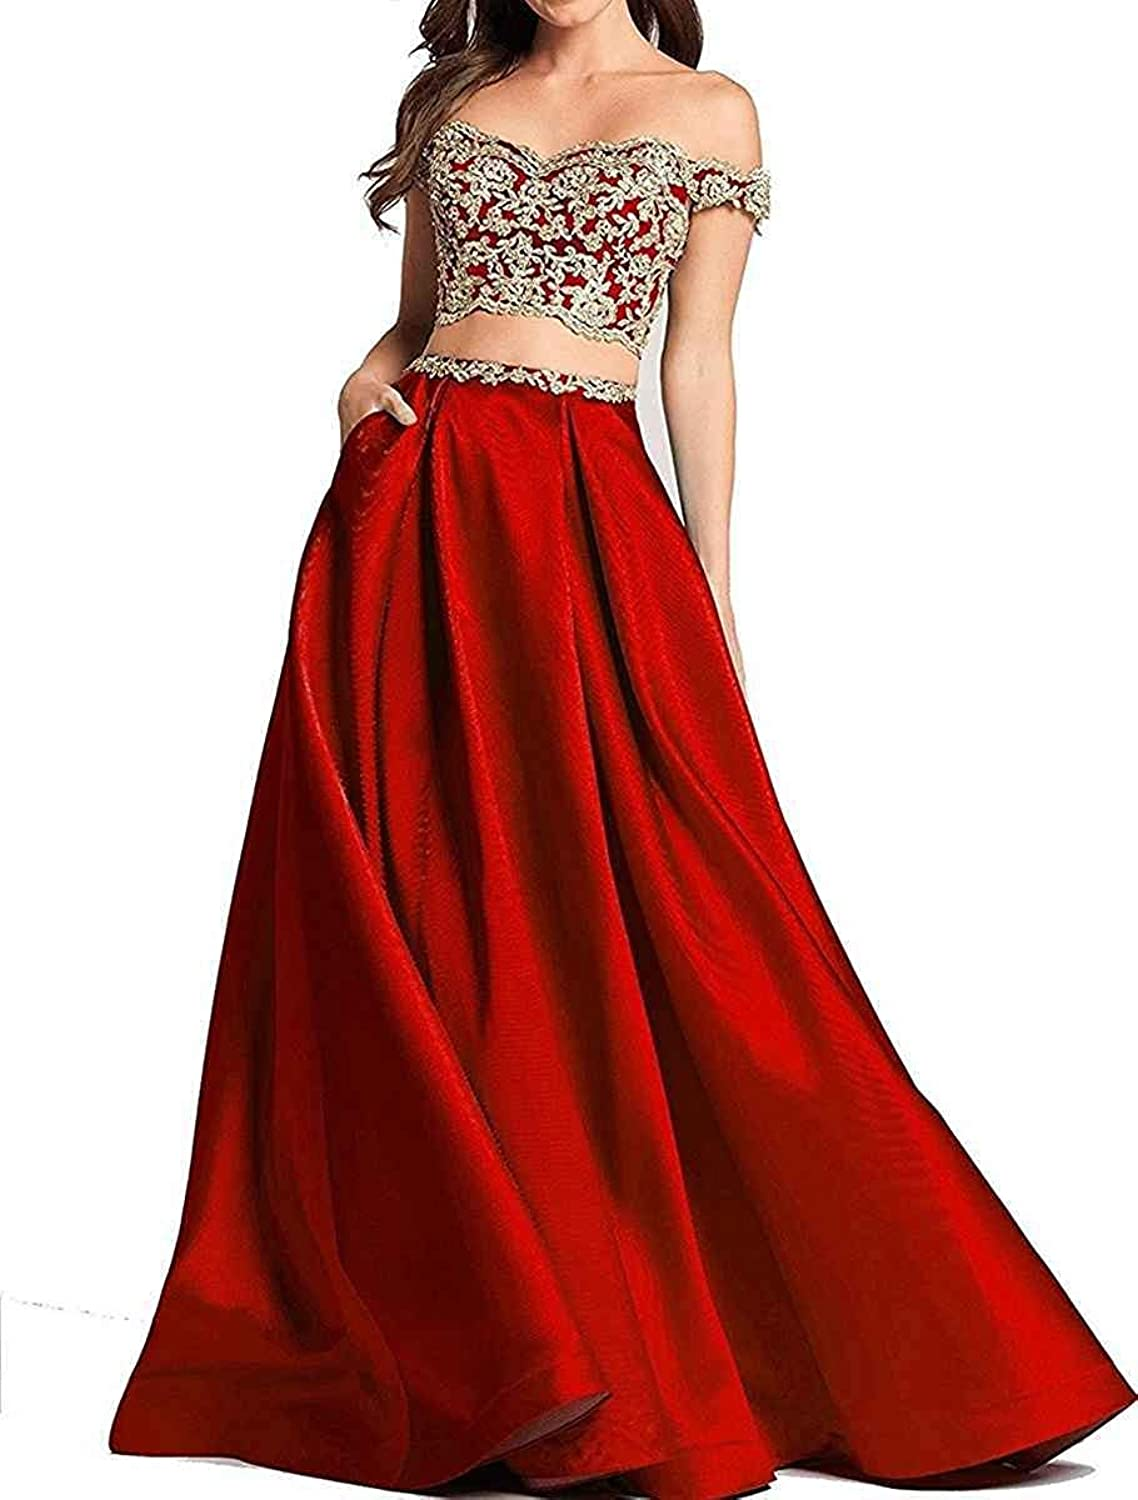 LastBridal Women Off The Shoulder Two Piece Prom Dresses Lace Appliques Formal Evening Gown LB0294